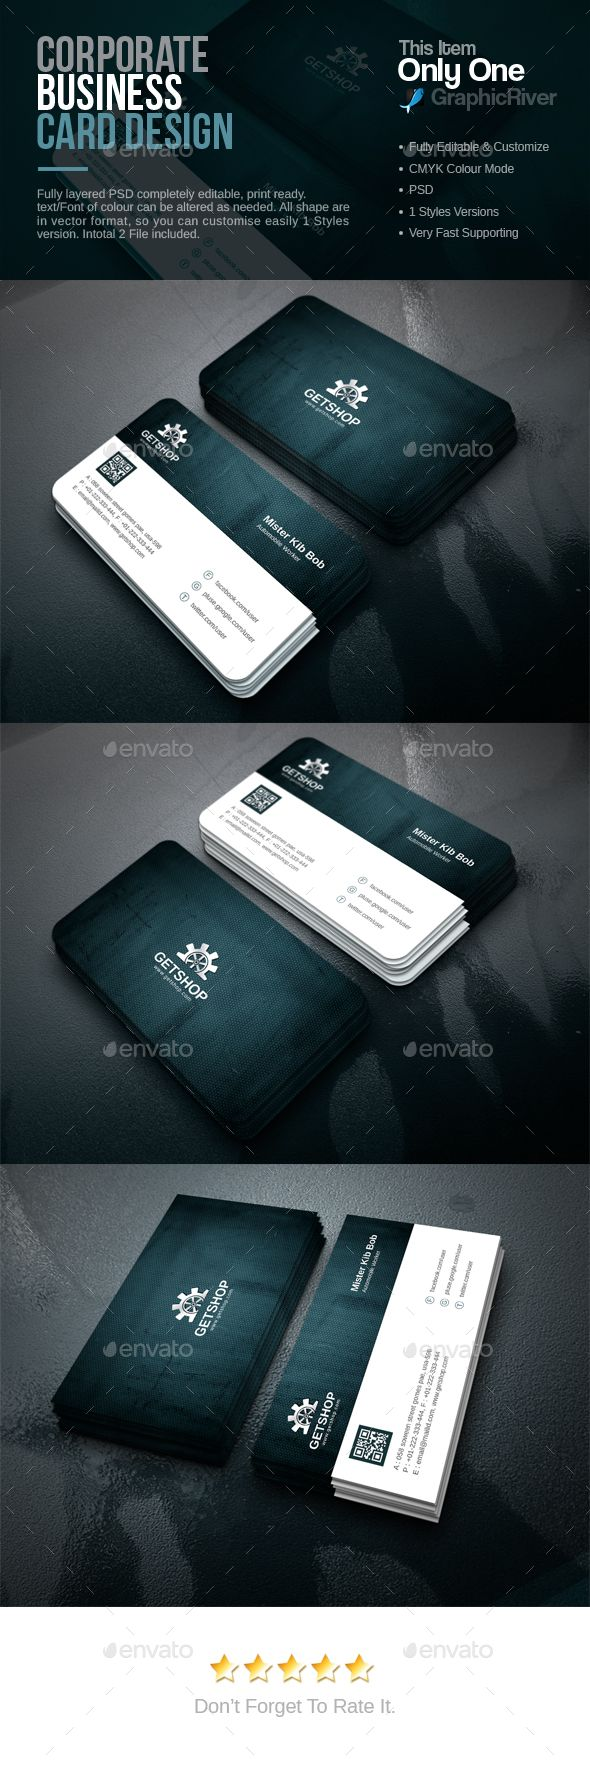 #Corporate Business Card - Corporate Business Cards Download here: https://graphicriver.net/item/corporate-business-card/16950049?reff=Classicdesignp